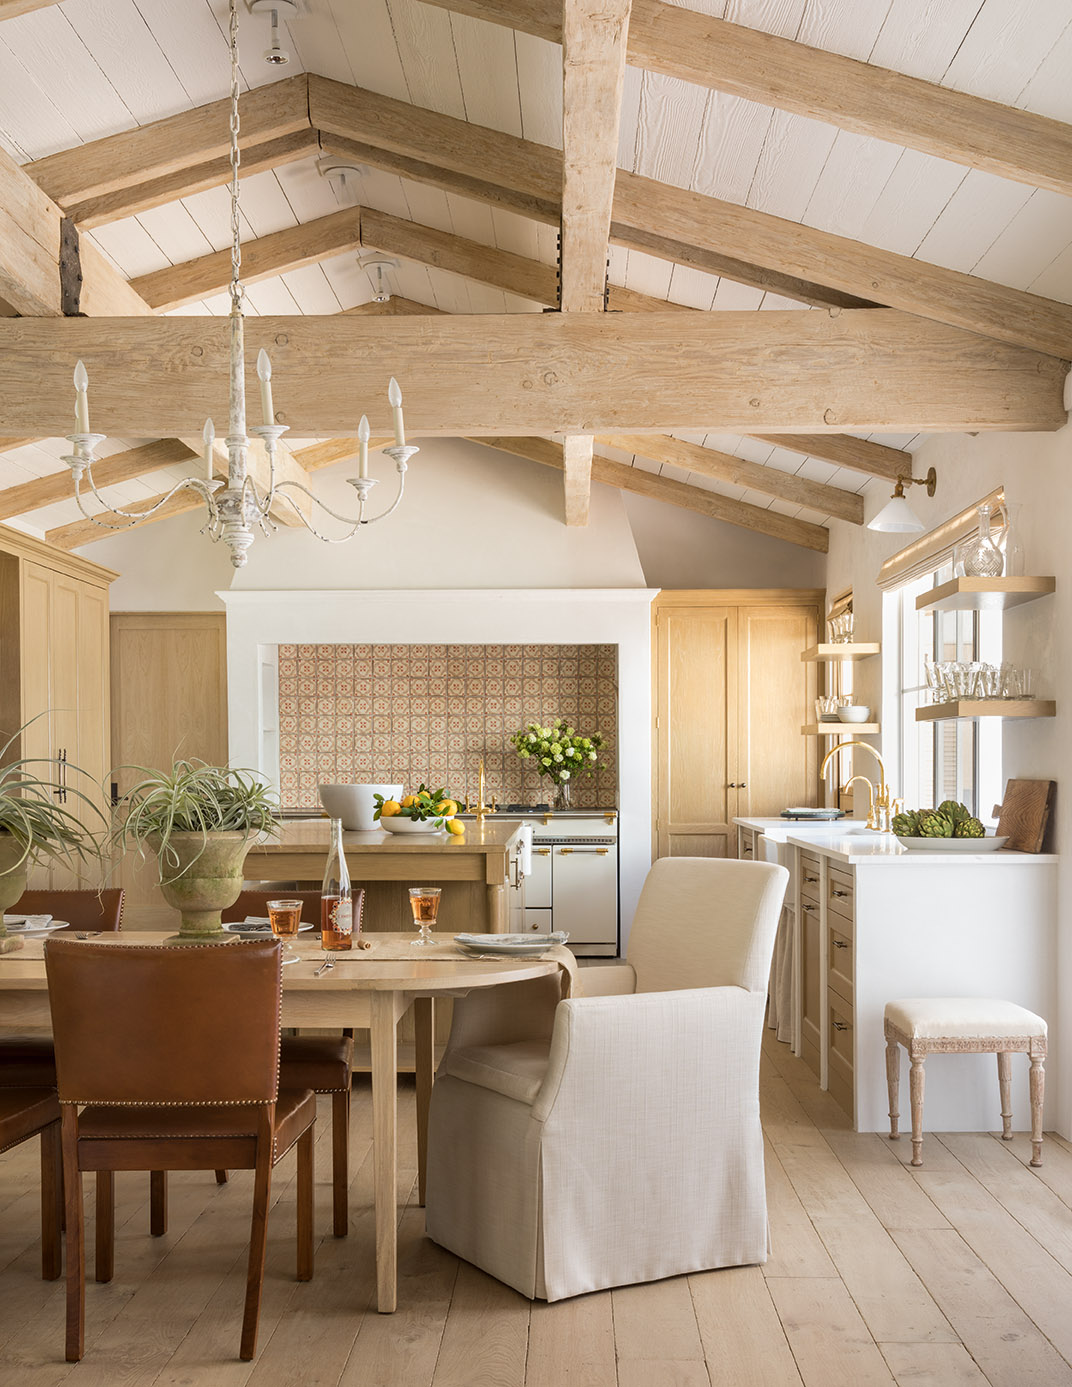 Stunning architecture and European country inspired design in a Malibu kitchen with white oak, limestone, and bespoke details - Giannetti Home. #kitchendesign #europeancountry #frenchfarmhouse #bespokekitchen